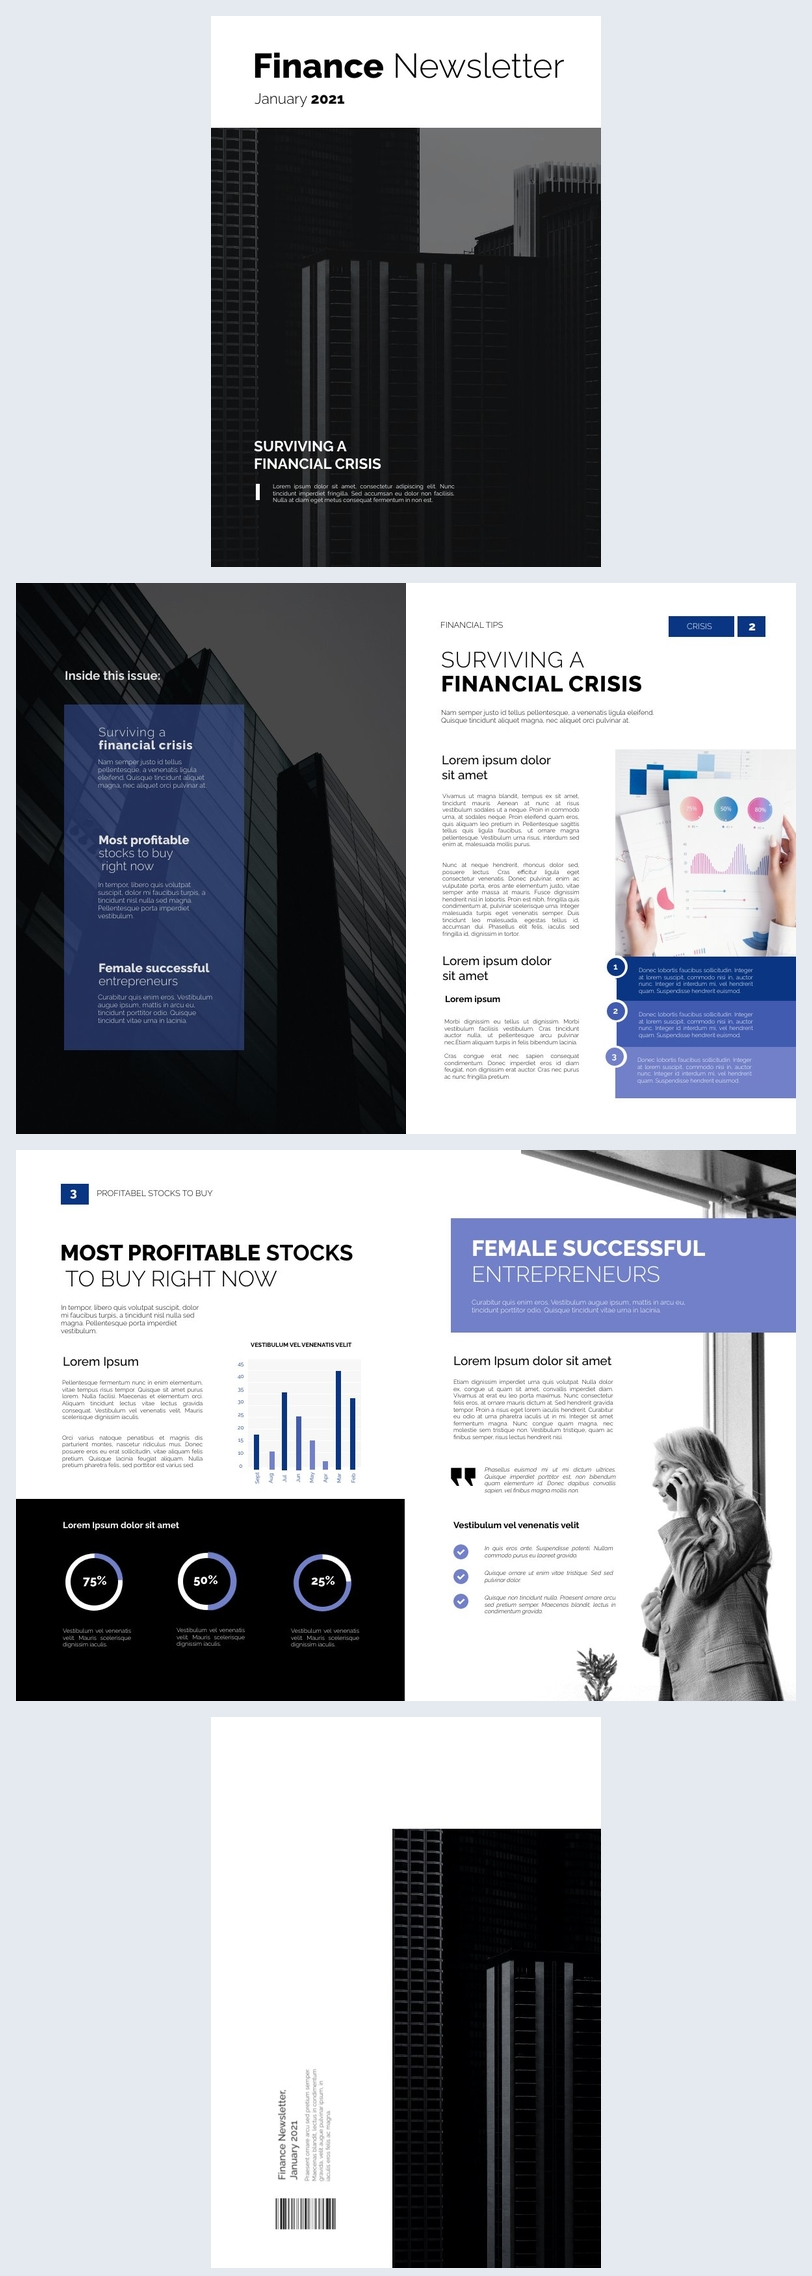 Finance Newsletter Design Example